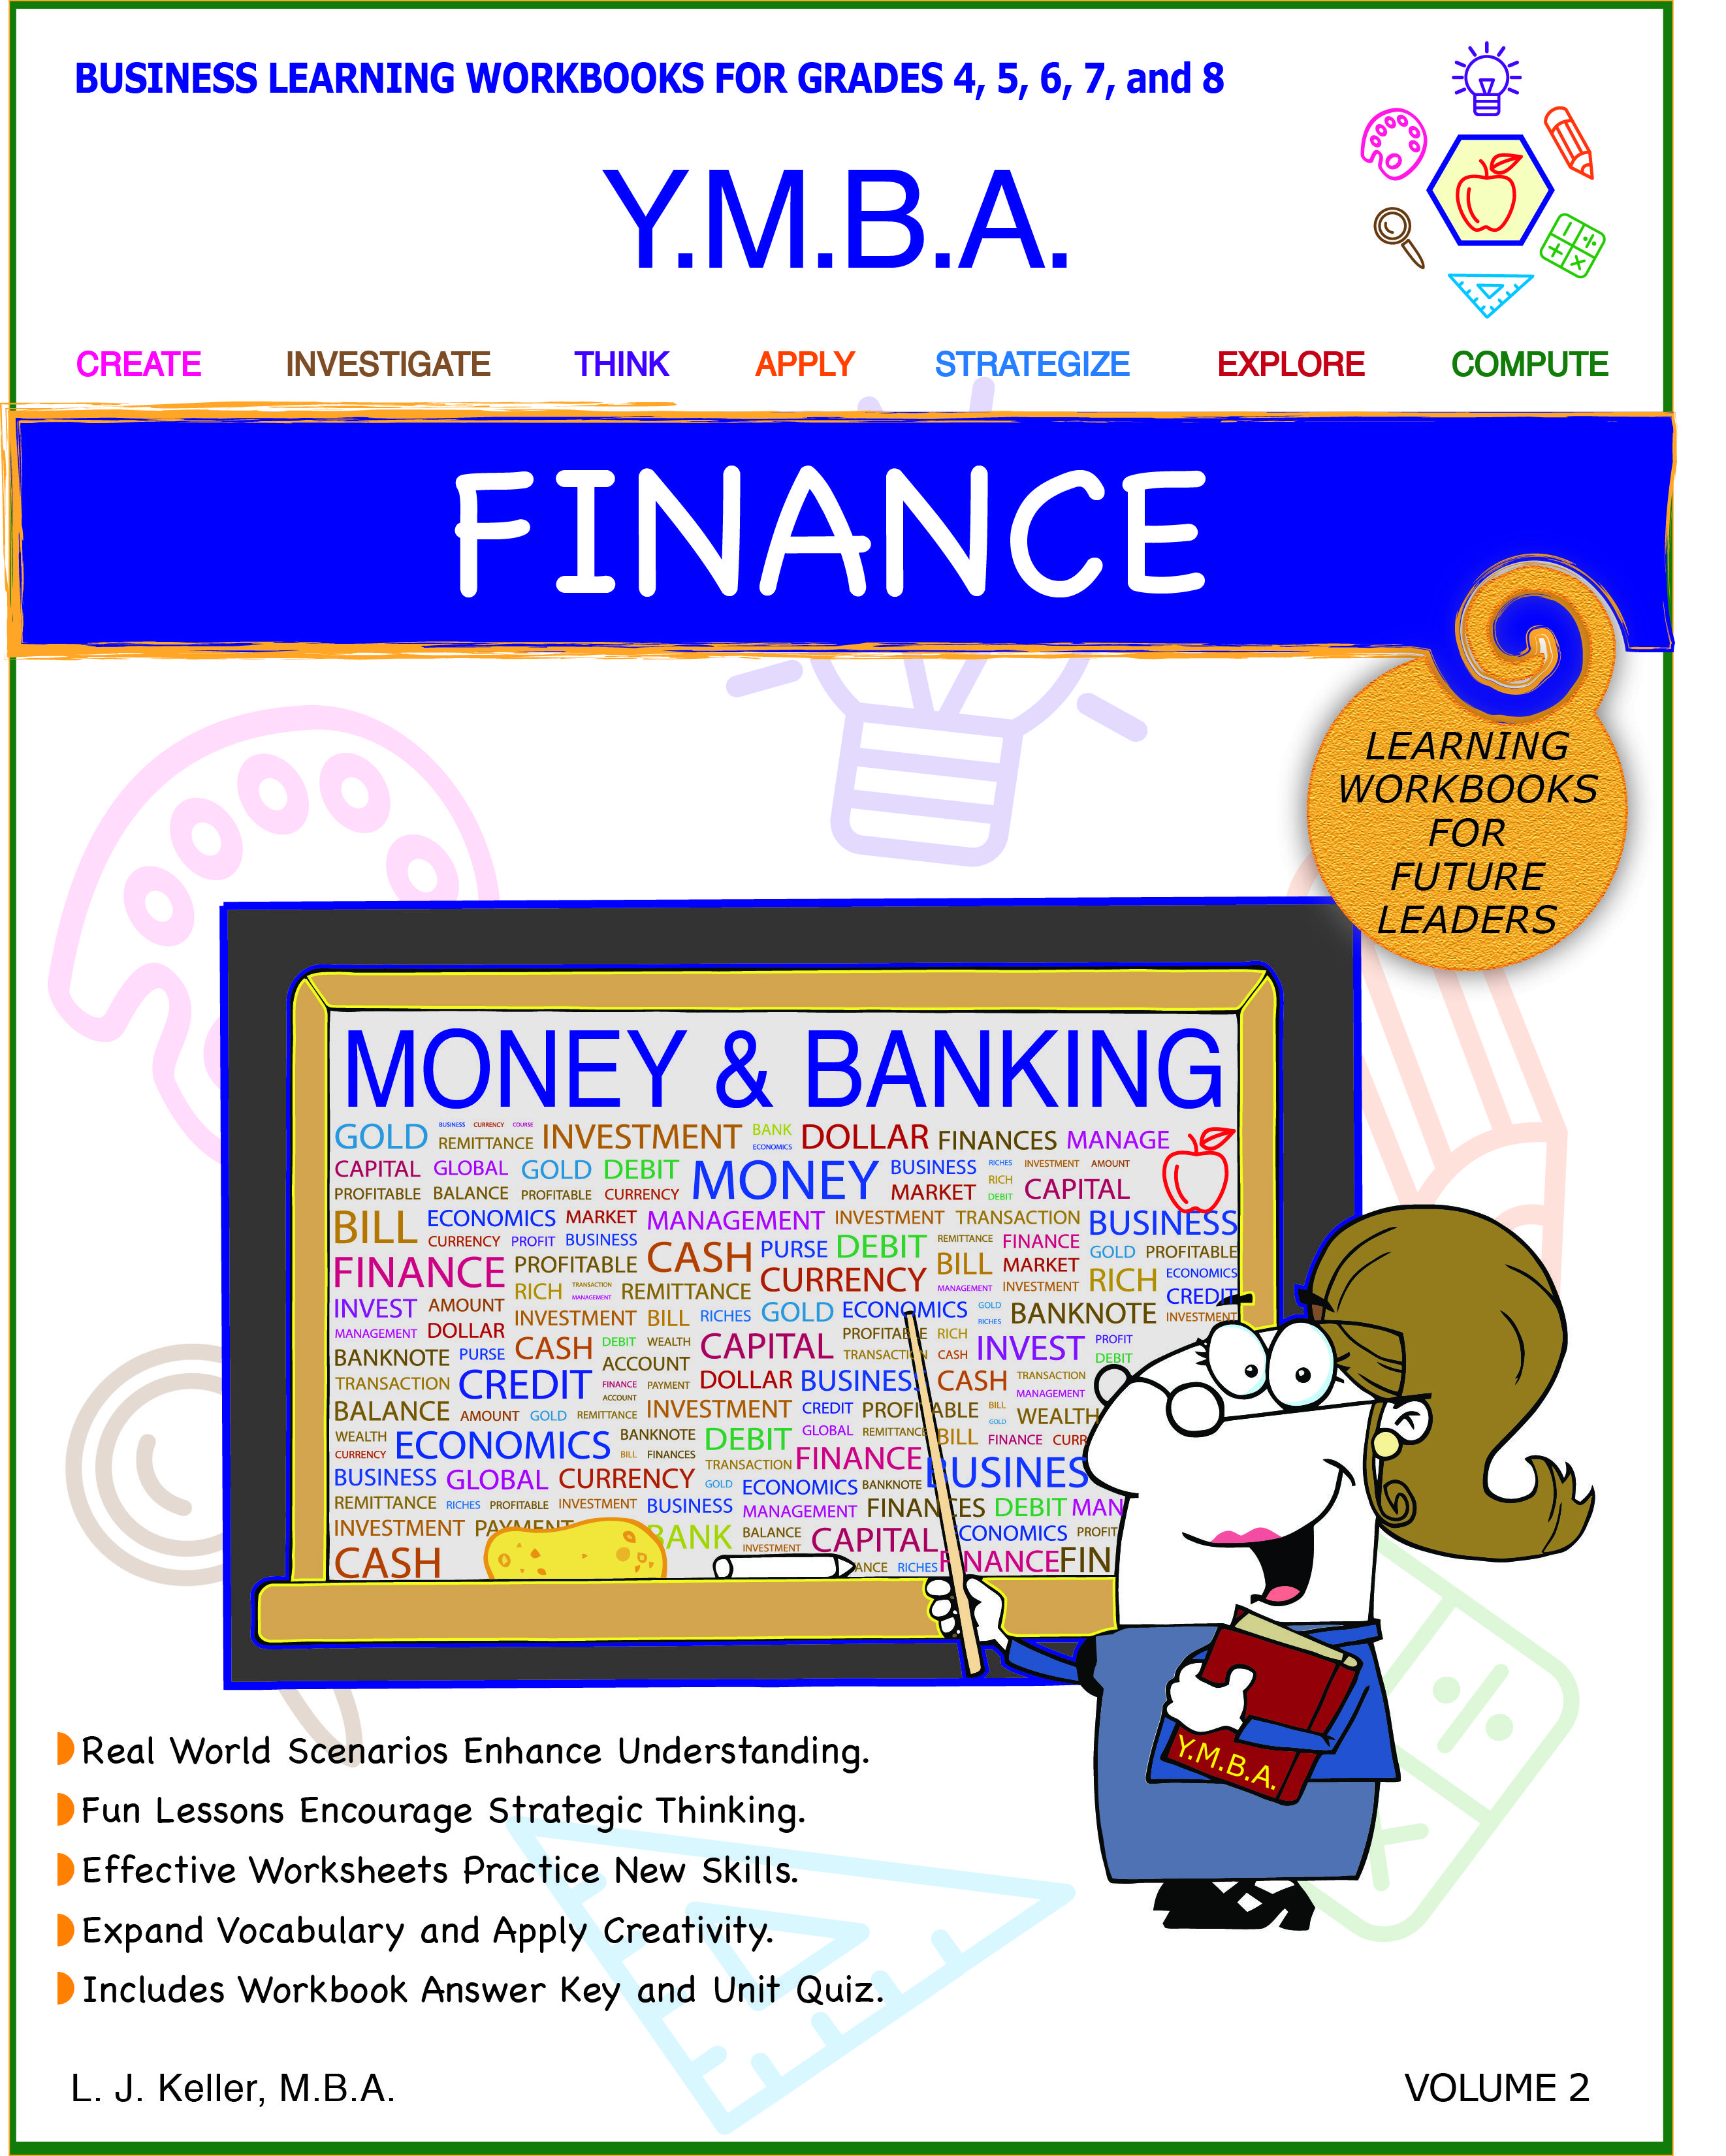 YMBA Finance workbook now available. Download free sample worksheets ...